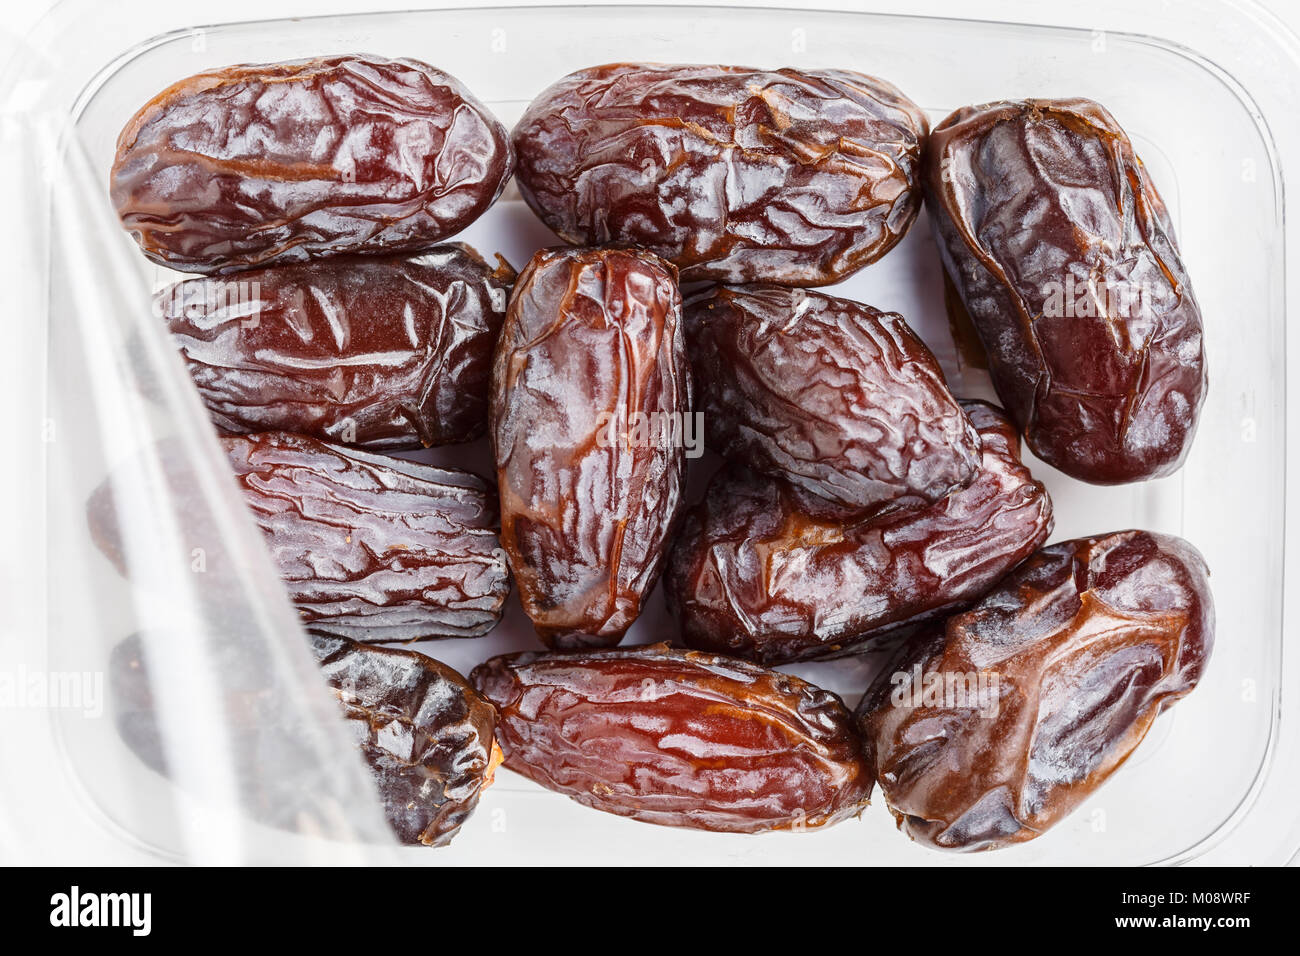 Medjool dates in a plastic container on white background - Stock Image